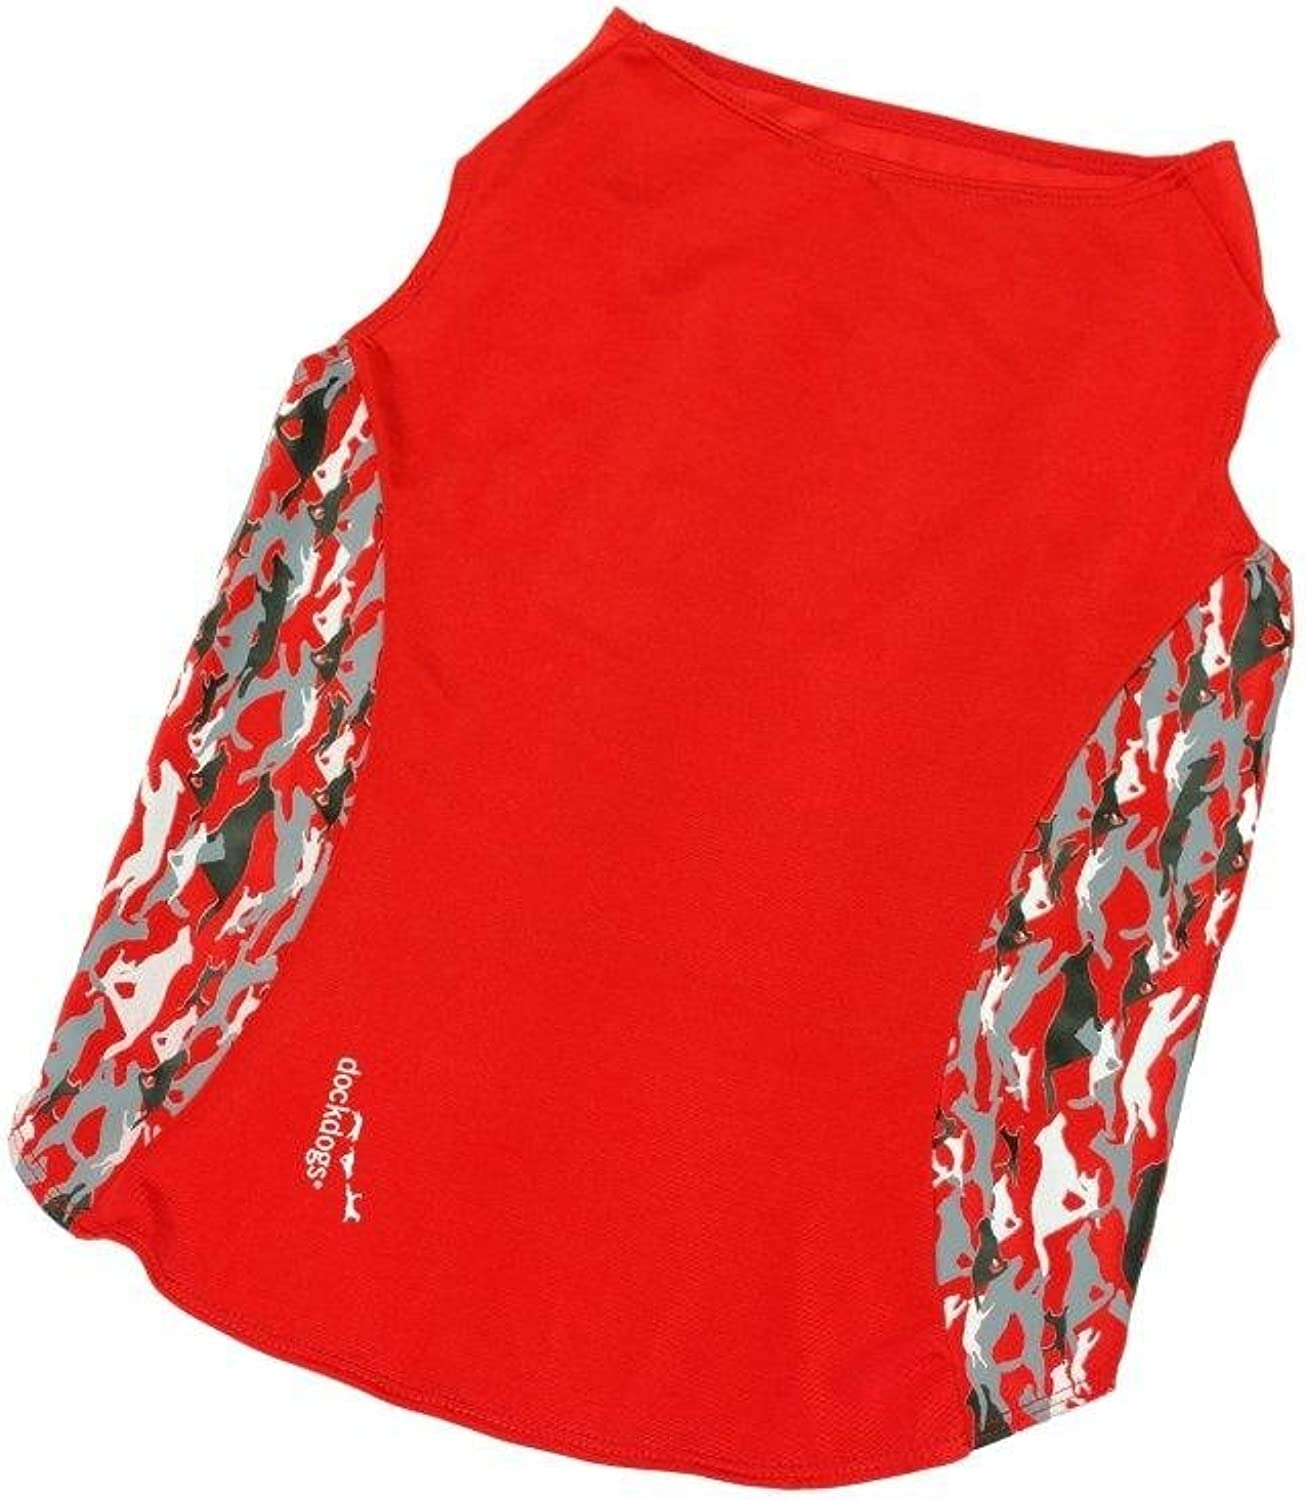 Dockdogs Pipeline Series High Performance Watersuit for Medium Dogs, Red